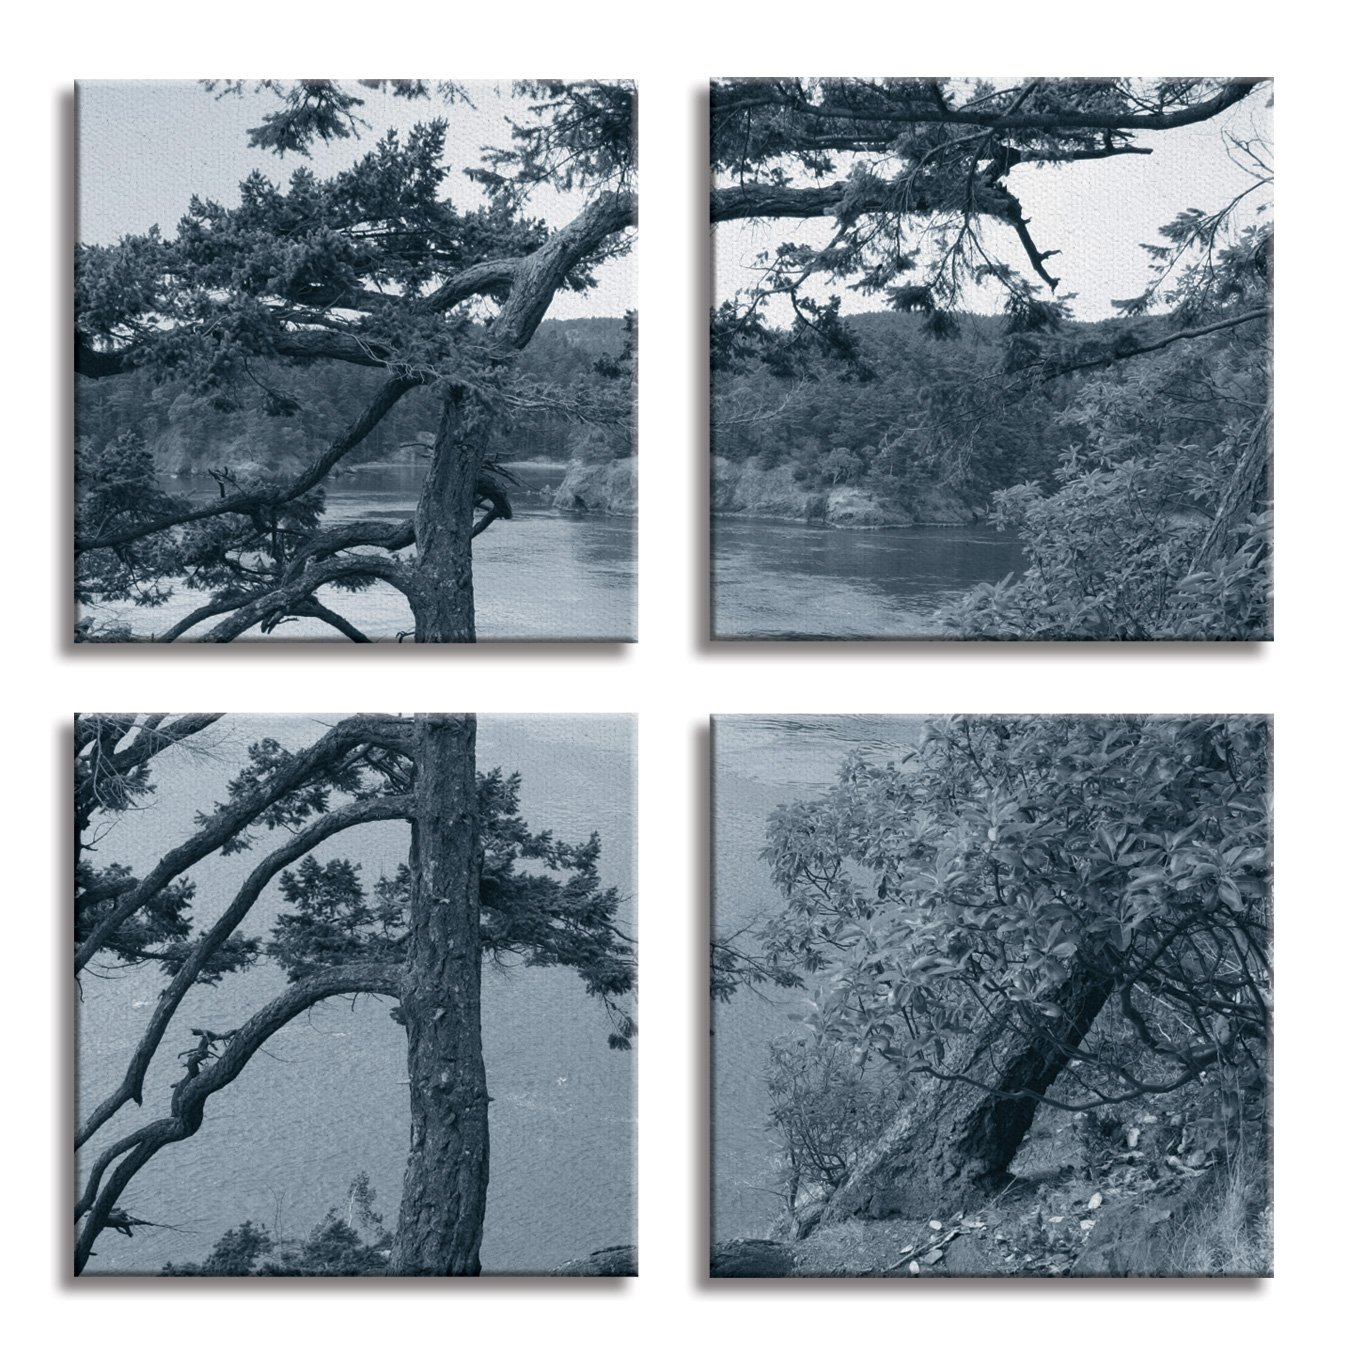 JP London 4 Panels 14in 4 Huge Gallery Wrap Canvas Wall Art Canadian Shield Johns Point Forest Black and White At Overall 28in QDCNV2084